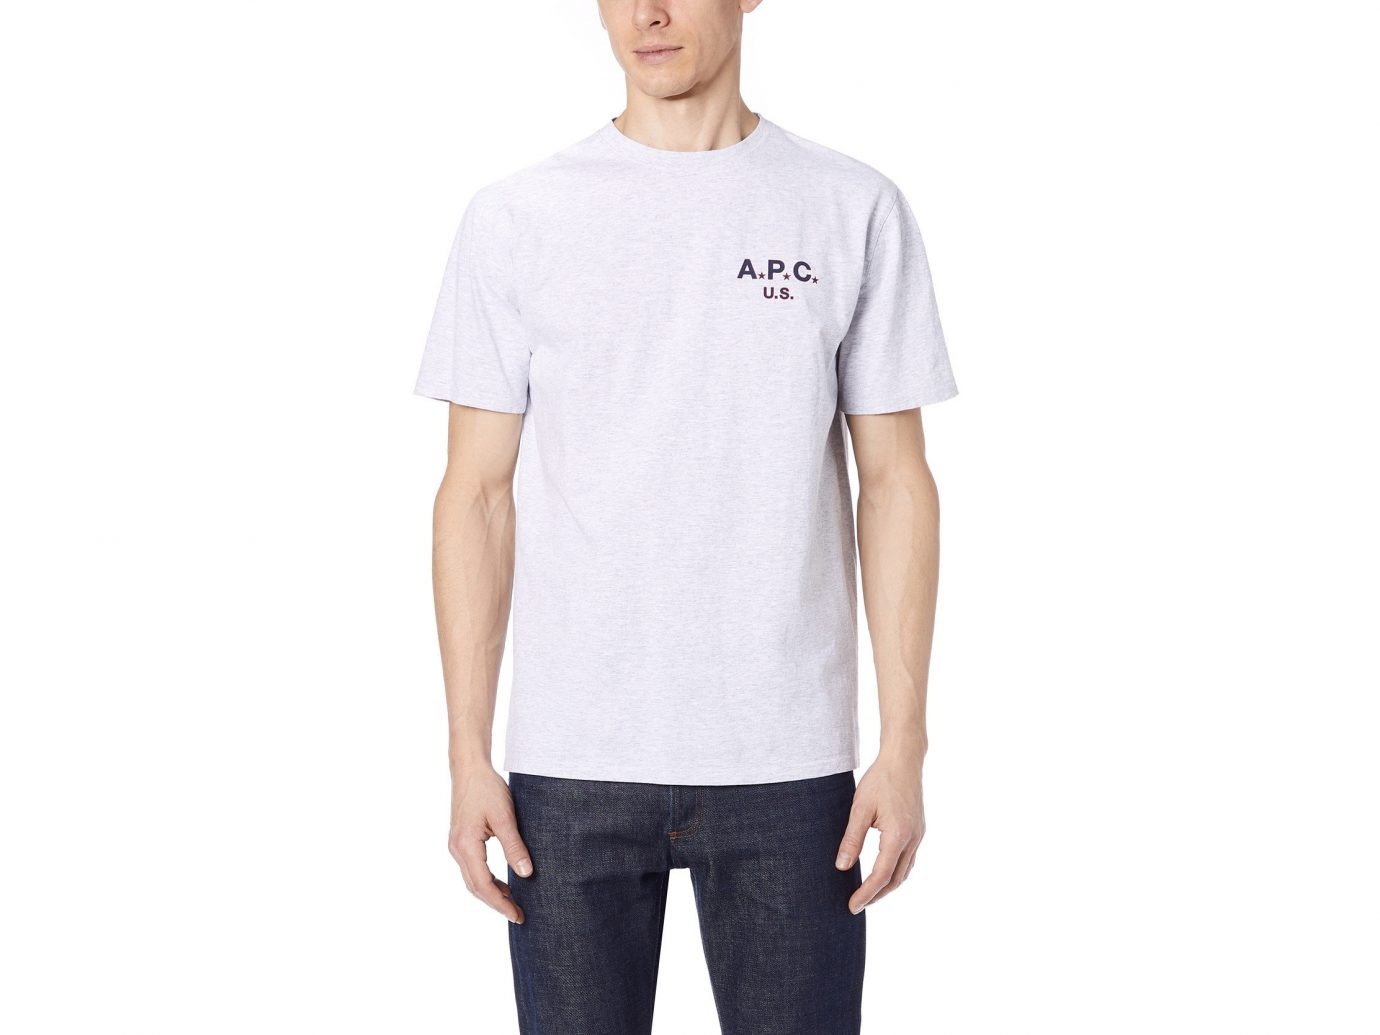 Spring Travel Style + Design Summer Travel Travel Shop person standing t shirt white clothing sleeve product shoulder neck pocket posing active shirt trouser